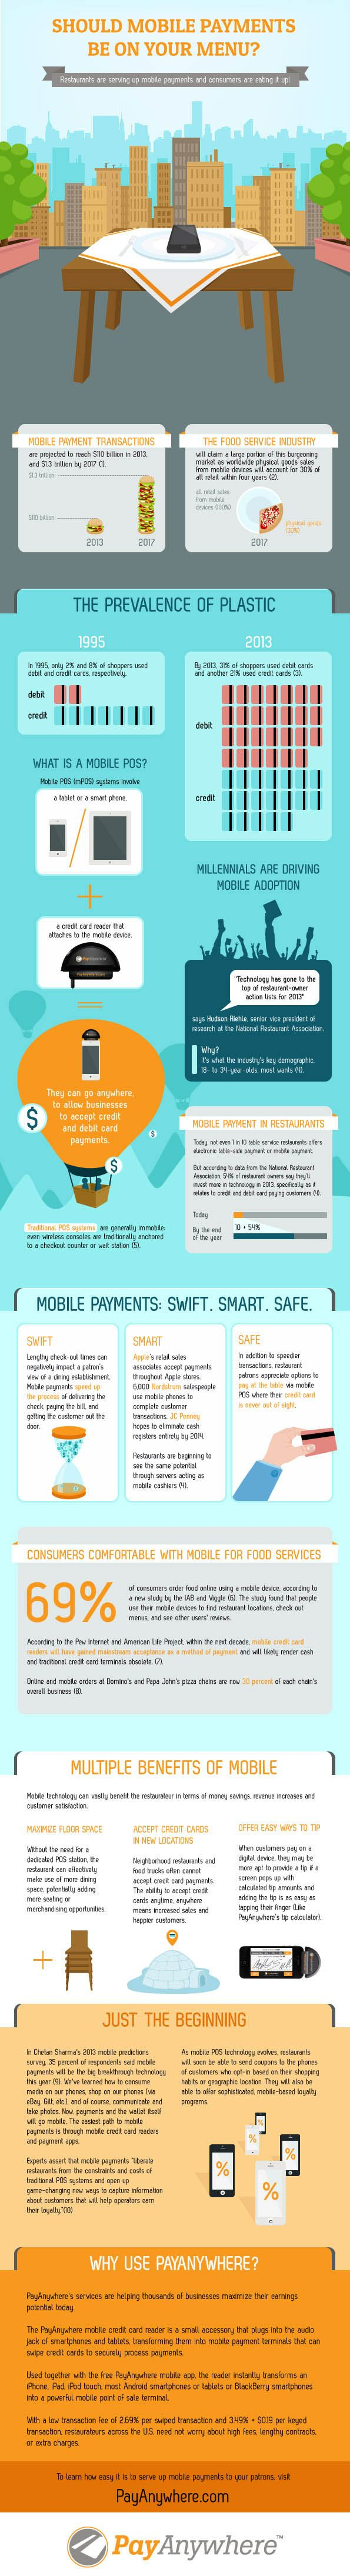 #Infographic: Should #Mobile Payments Be On Your Menu? via @MobileMW article: 1 in 3 Restaurants to Use Mobile Payments by 2018 |